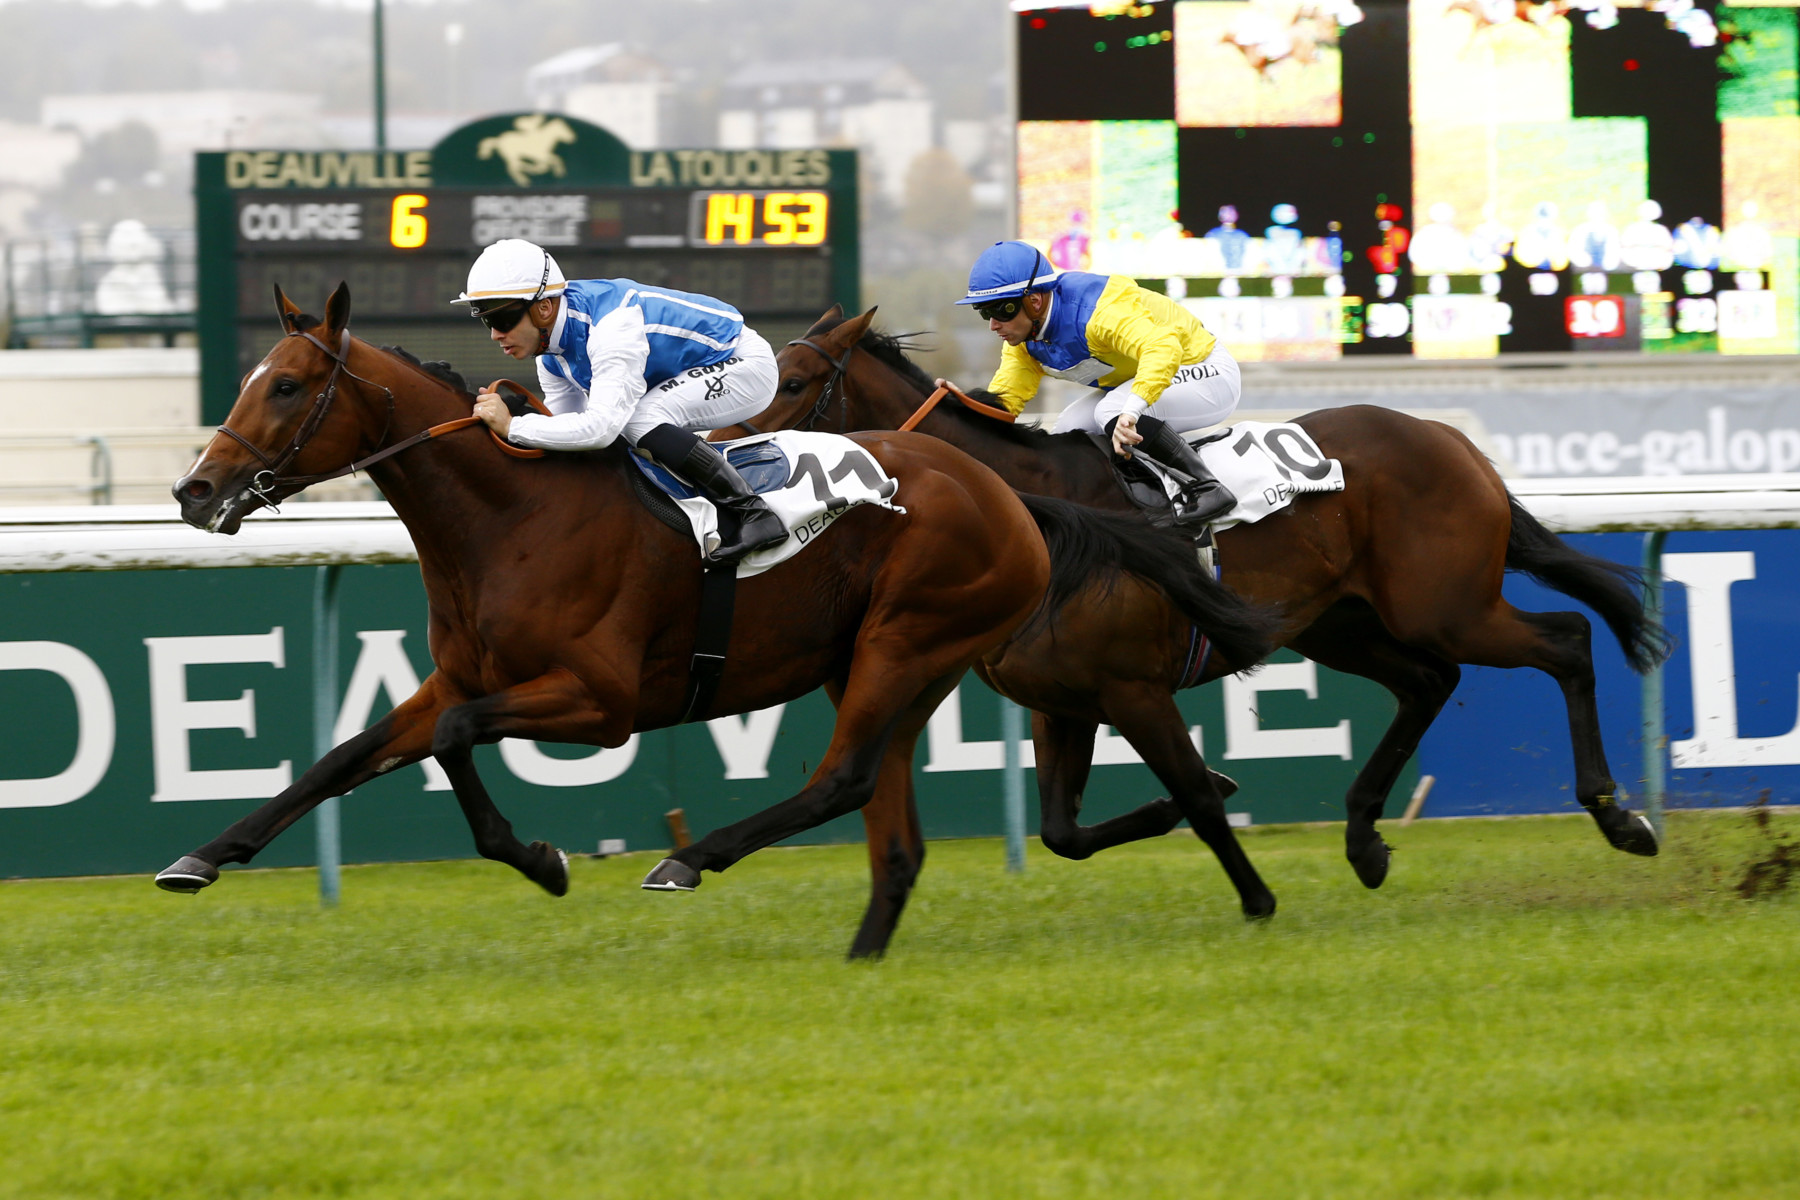 PRIX VULCAIN (L) - Maniaco justifie son programme ambitieux